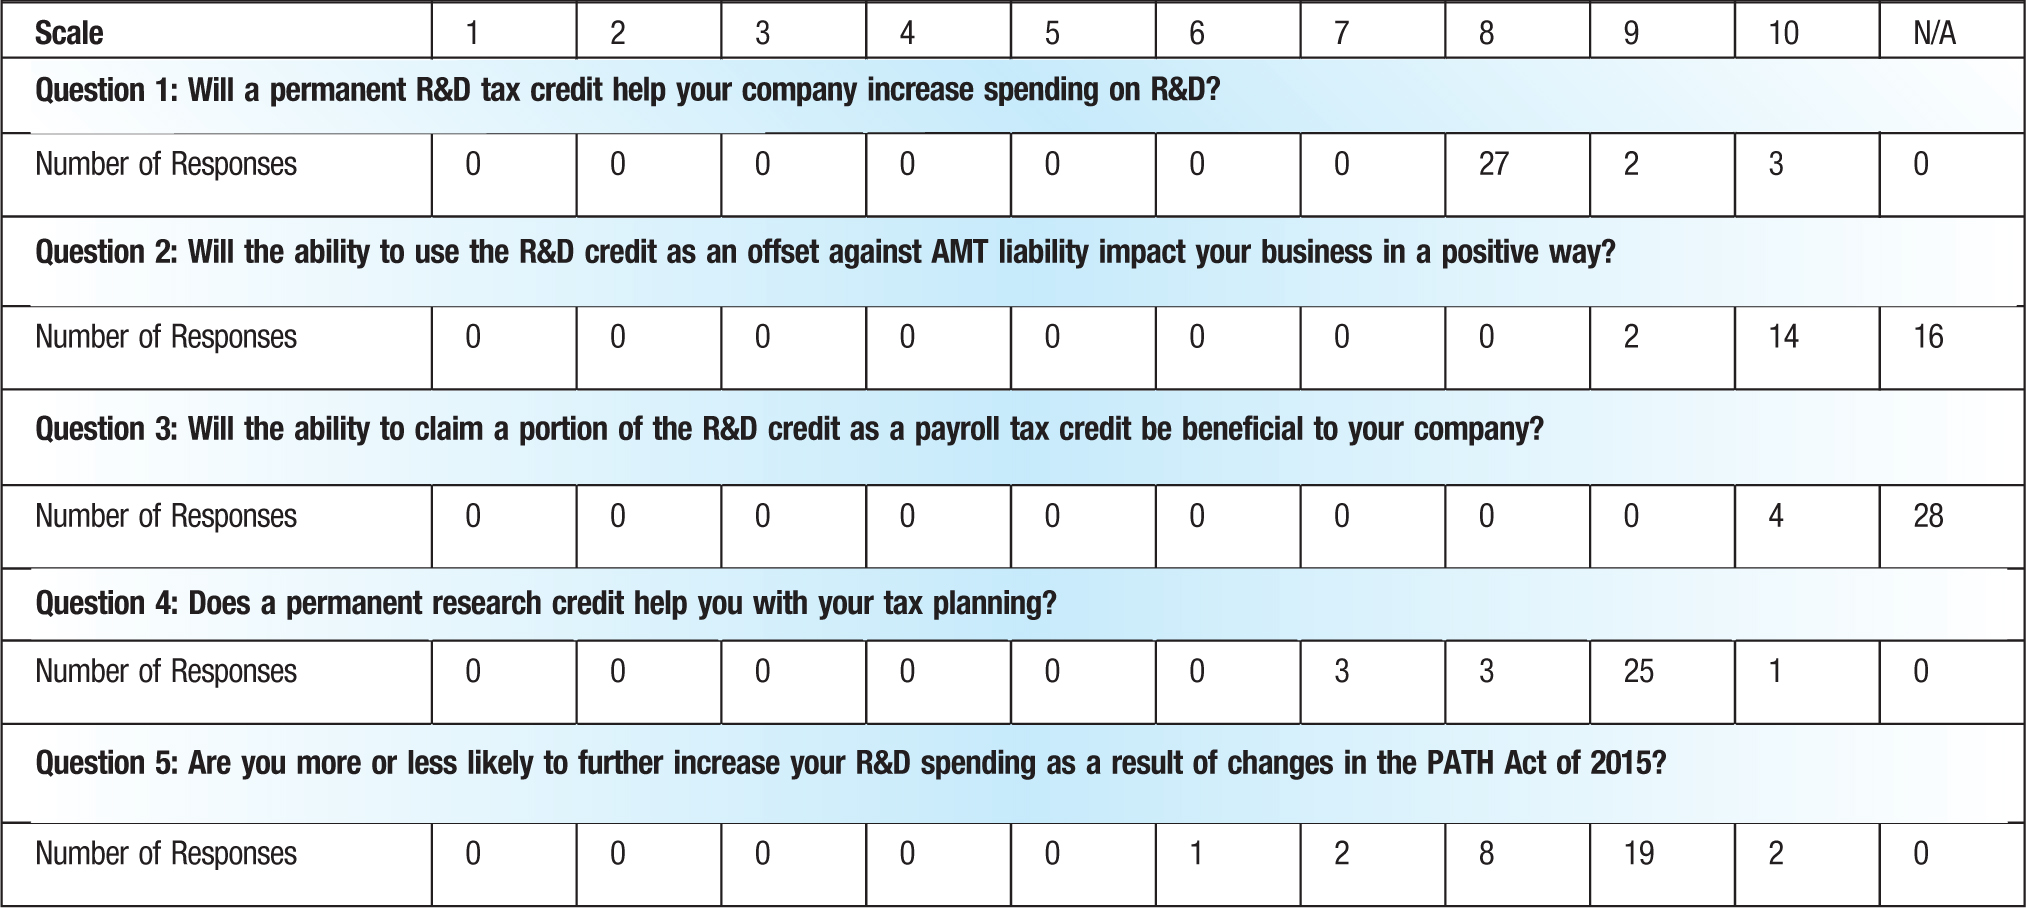 Scale; 1; 2; 3; 4; 5; 6; 7; 8; 9; 10; N/A Question 1: Will a permanent R&D tax credit help your company increase spending on R&D? Number of Responses; 0; 0; 0; 0; 0; 0; 0; 27; 2; 3; 0 Question 2: Will the ability to use the R&D credit as an offset against AMT liability impact your business in a positive way? Number of Responses; 0; 0; 0; 0; 0; 0; 0; 0; 2; 14; 16 Question 3: Will the ability to claim a portion of the R&D credit as a payroll tax credit be beneficial to your company? Number of Responses; 0; 0; 0; 0; 0; 0; 0; 0; 0; 4; 28 Question 4: Does a permanent research credit help you with your tax planning? Number of Responses; 0; 0; 0; 0; 0; 0; 3; 3; 25; 1; 0 Question 5: Are you more or less likely to further increase your R&D spending as a result of changes in the PATH Act of 2015? Number of Responses; 0; 0; 0; 0; 0; 1; 2; 8; 19; 2; 0